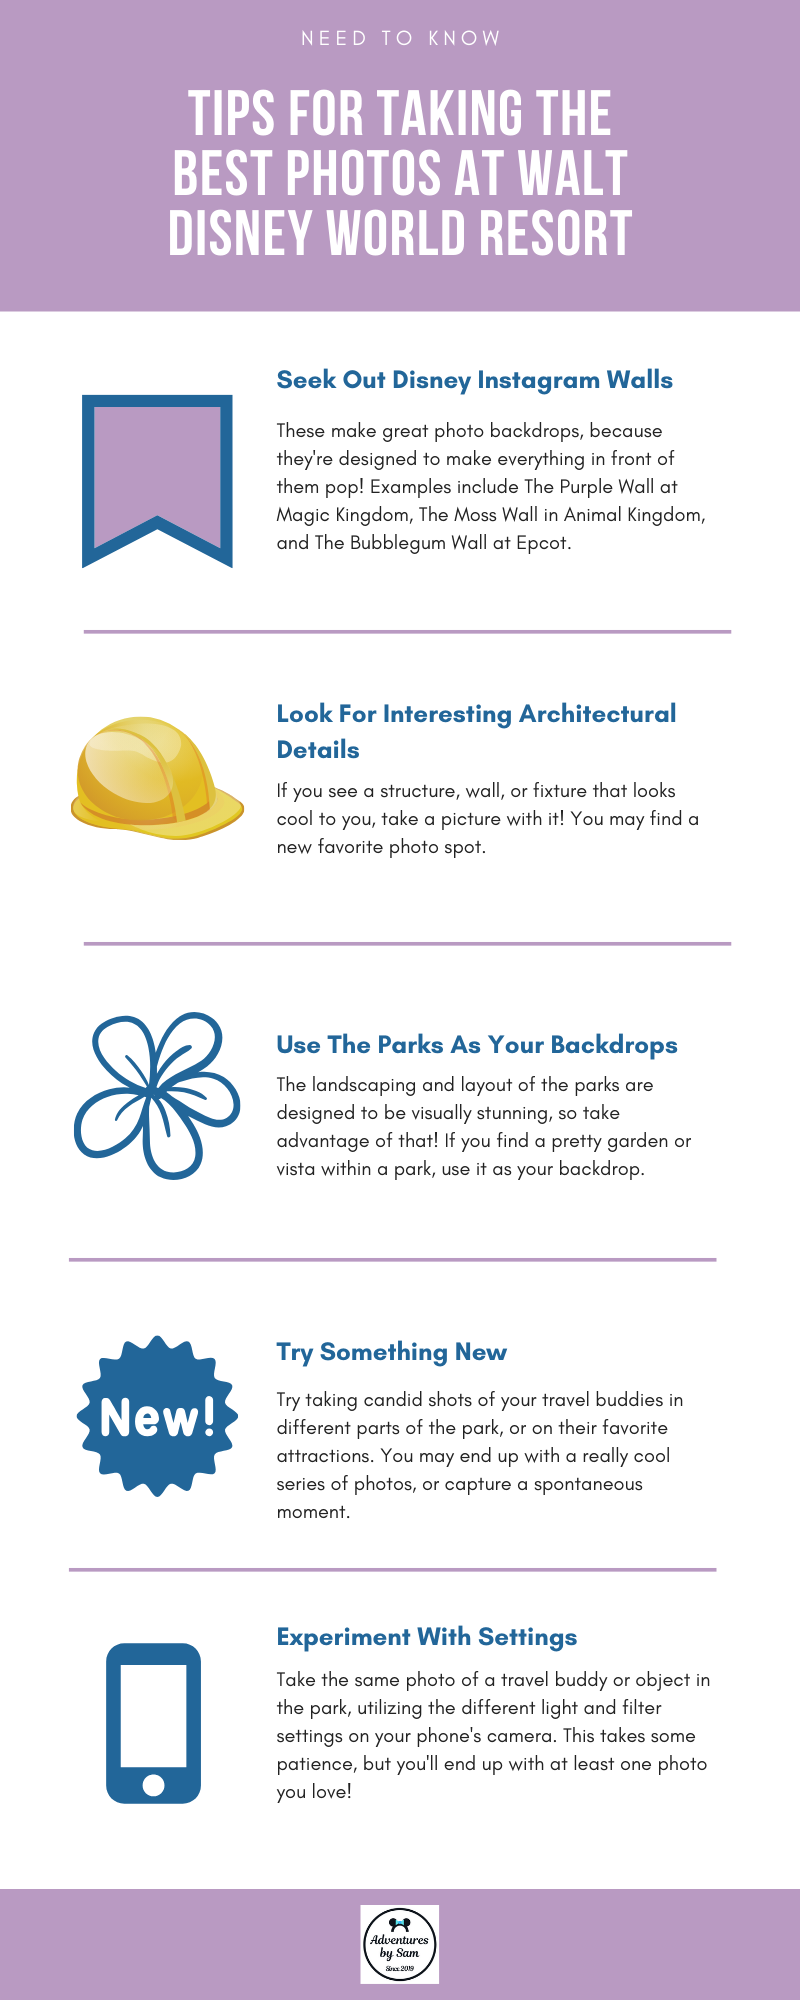 Tips for Taking the Best Photos at Walt Disney World (Infographic)